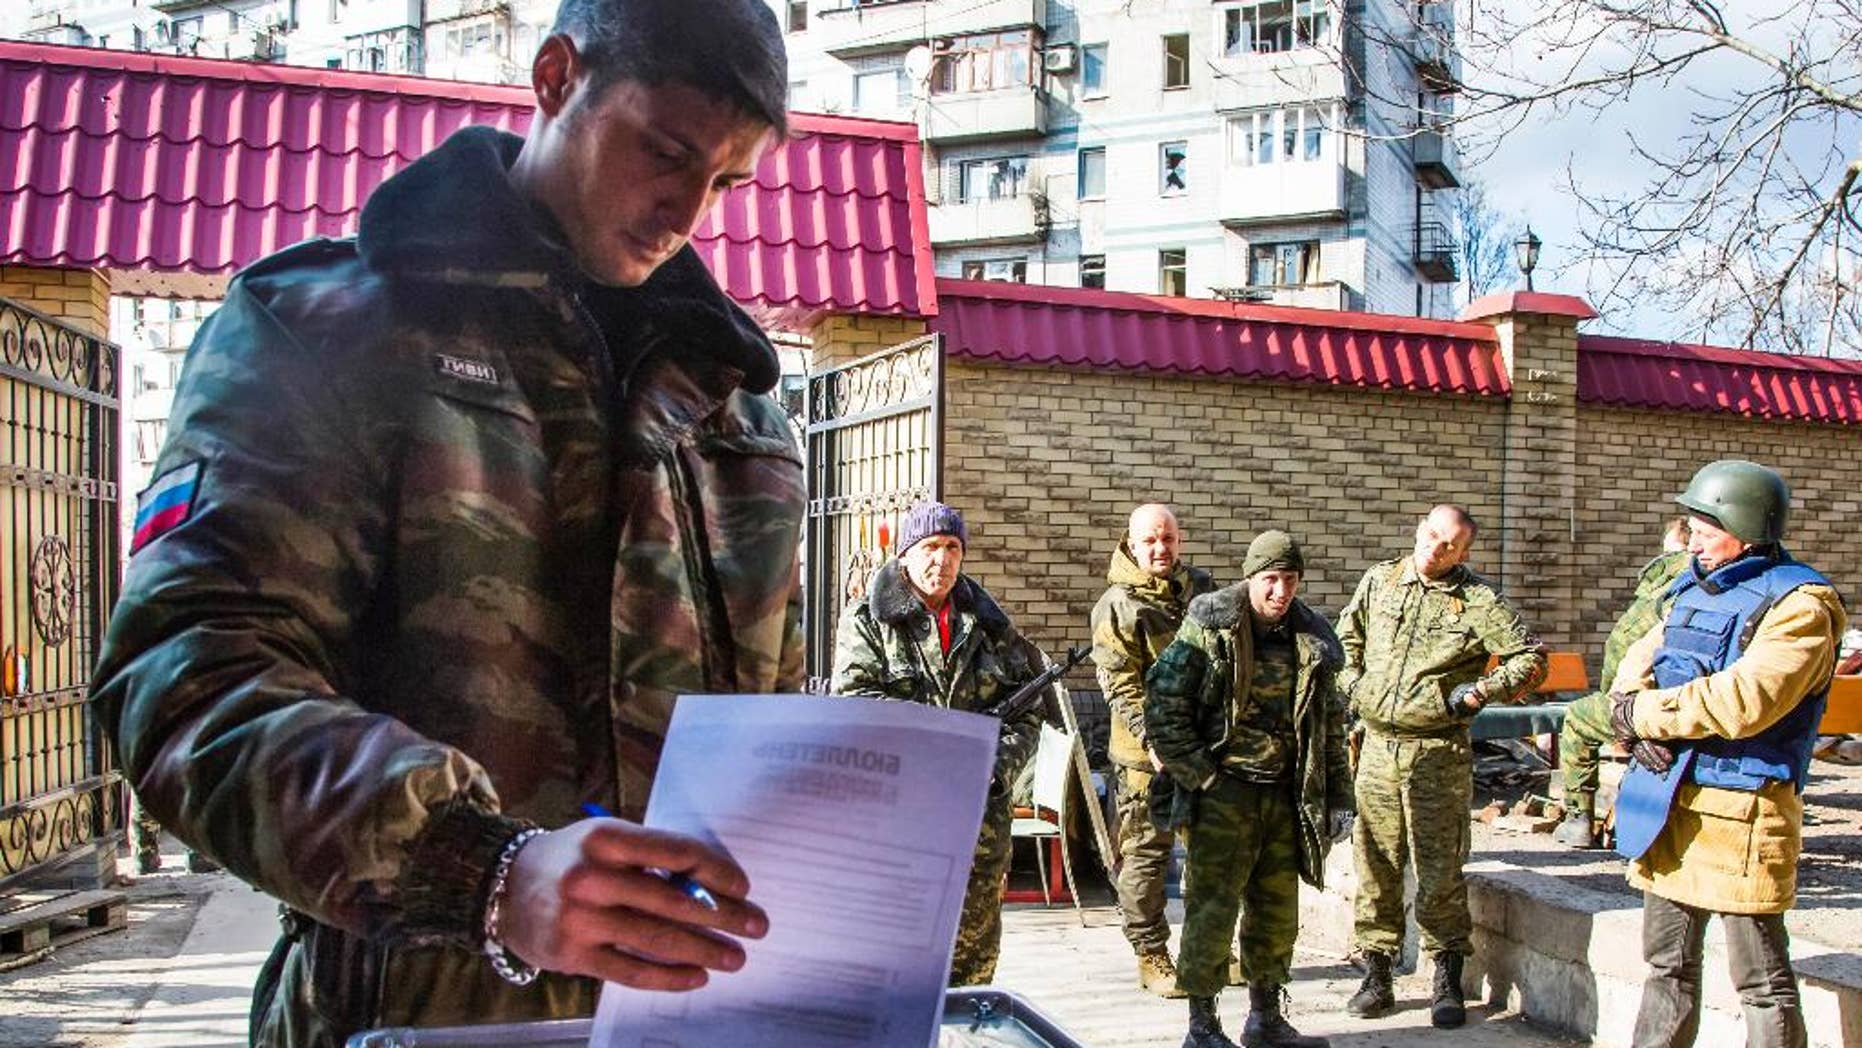 FILE - In this Nov. 2, 2014, file photo, a Pro-Russian rebel commander with the nom de guerre Givi casts his ballot during supreme council and presidential elections on the front line near Donetsk airport in the city of Donetsk, eastern Ukraine. Rebels' Donets News Agency said on Wednesday, Feb. 8, 2017, that Mikhail Tolstykh, better known under his nom de guerre Givi, died early Wednesday morning in what it described as a terrorist attack. Several Russian media outlets said 35-year old Tolstykh died in an explosion in his office. (AP Photo/Dmitry Lovetsky, file)